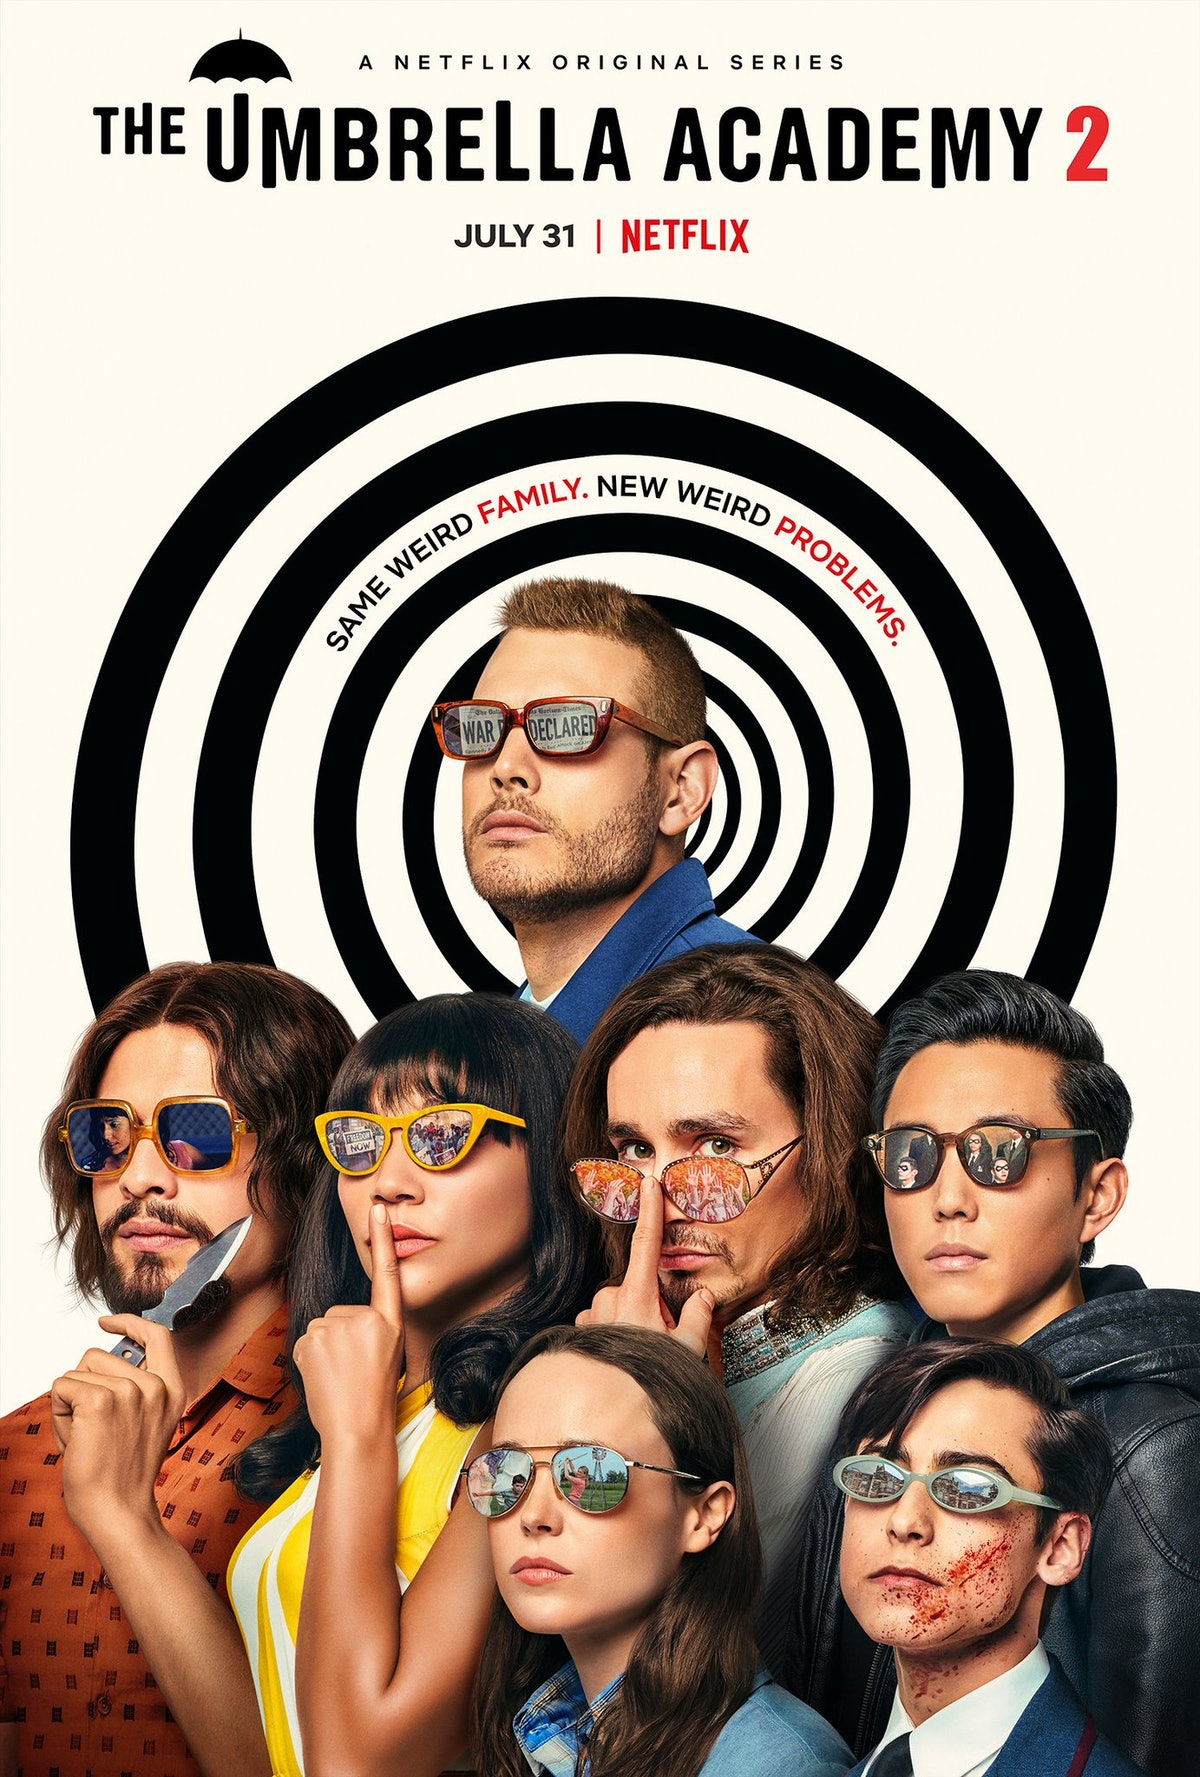 'The Umbrella Academy' Season 2 poster is filled with easter eggs.